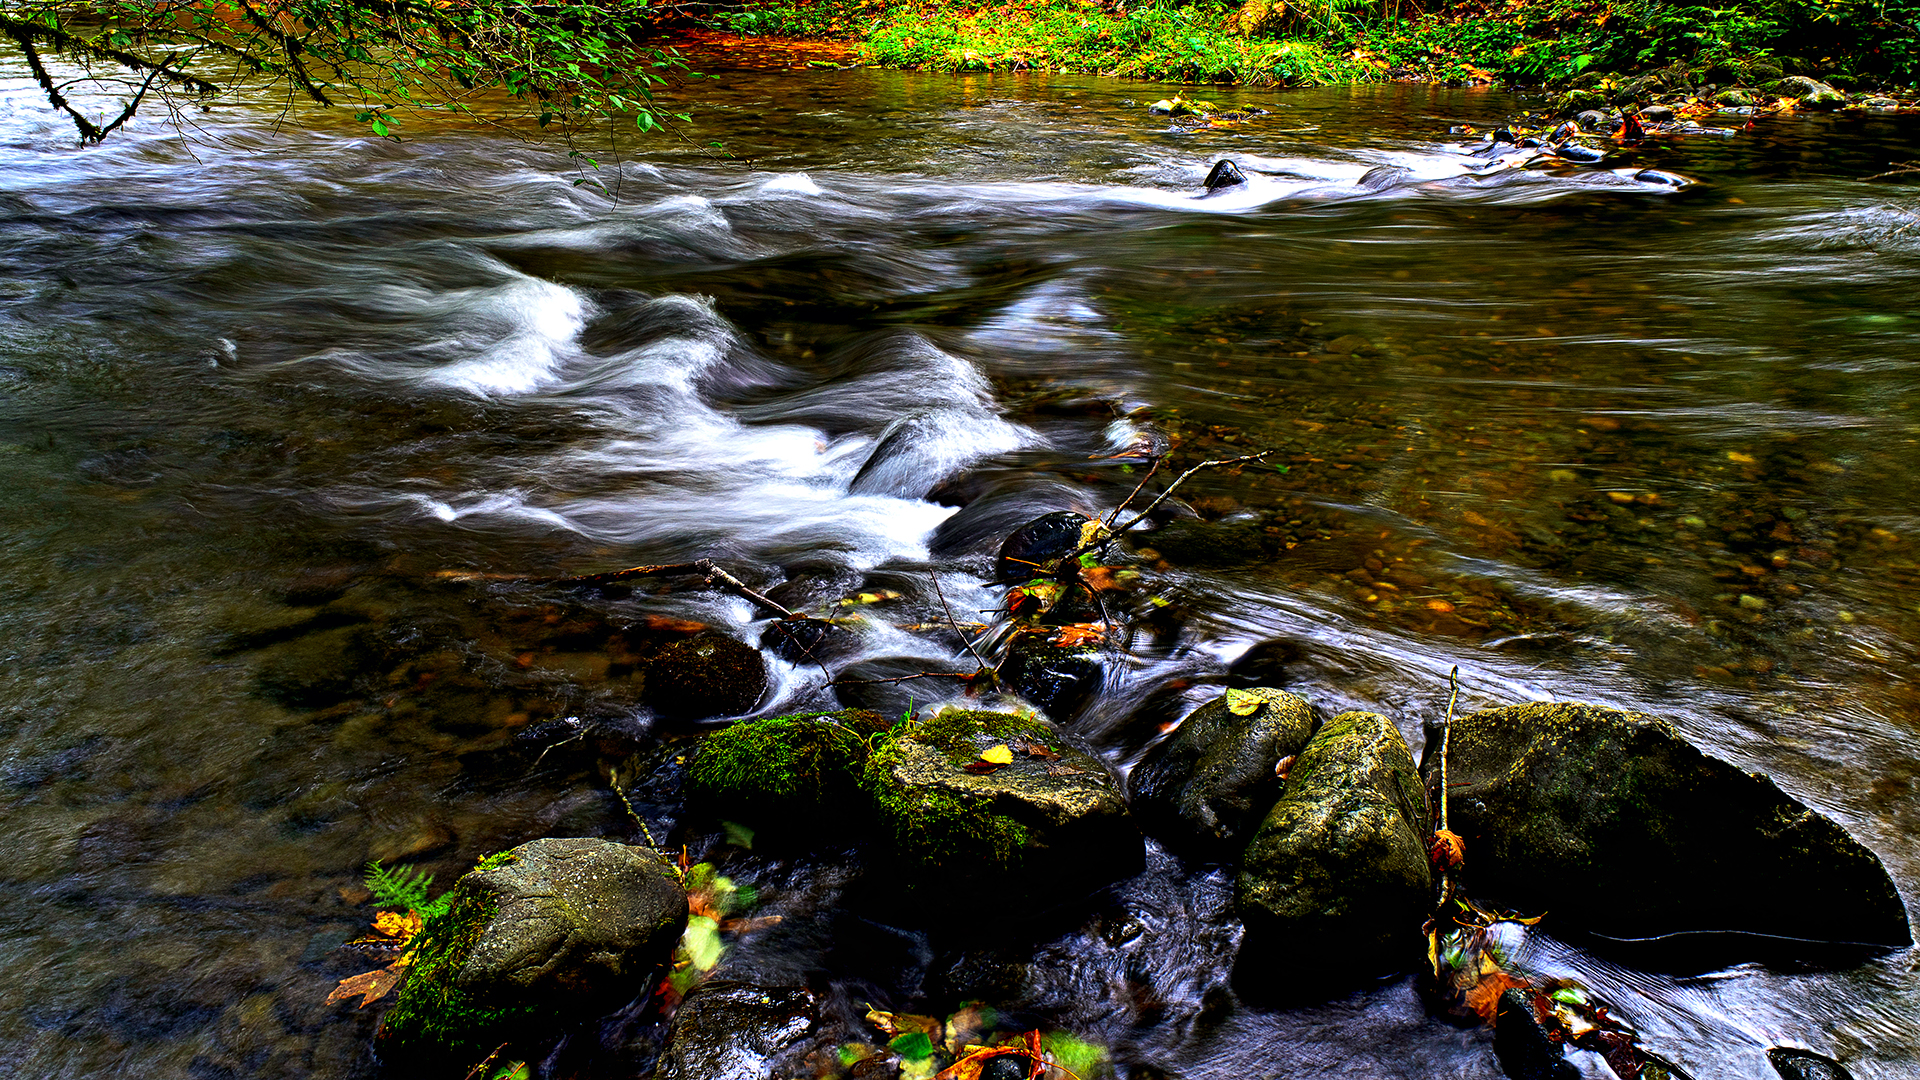 Photograph of Stream on Campbell River, BC